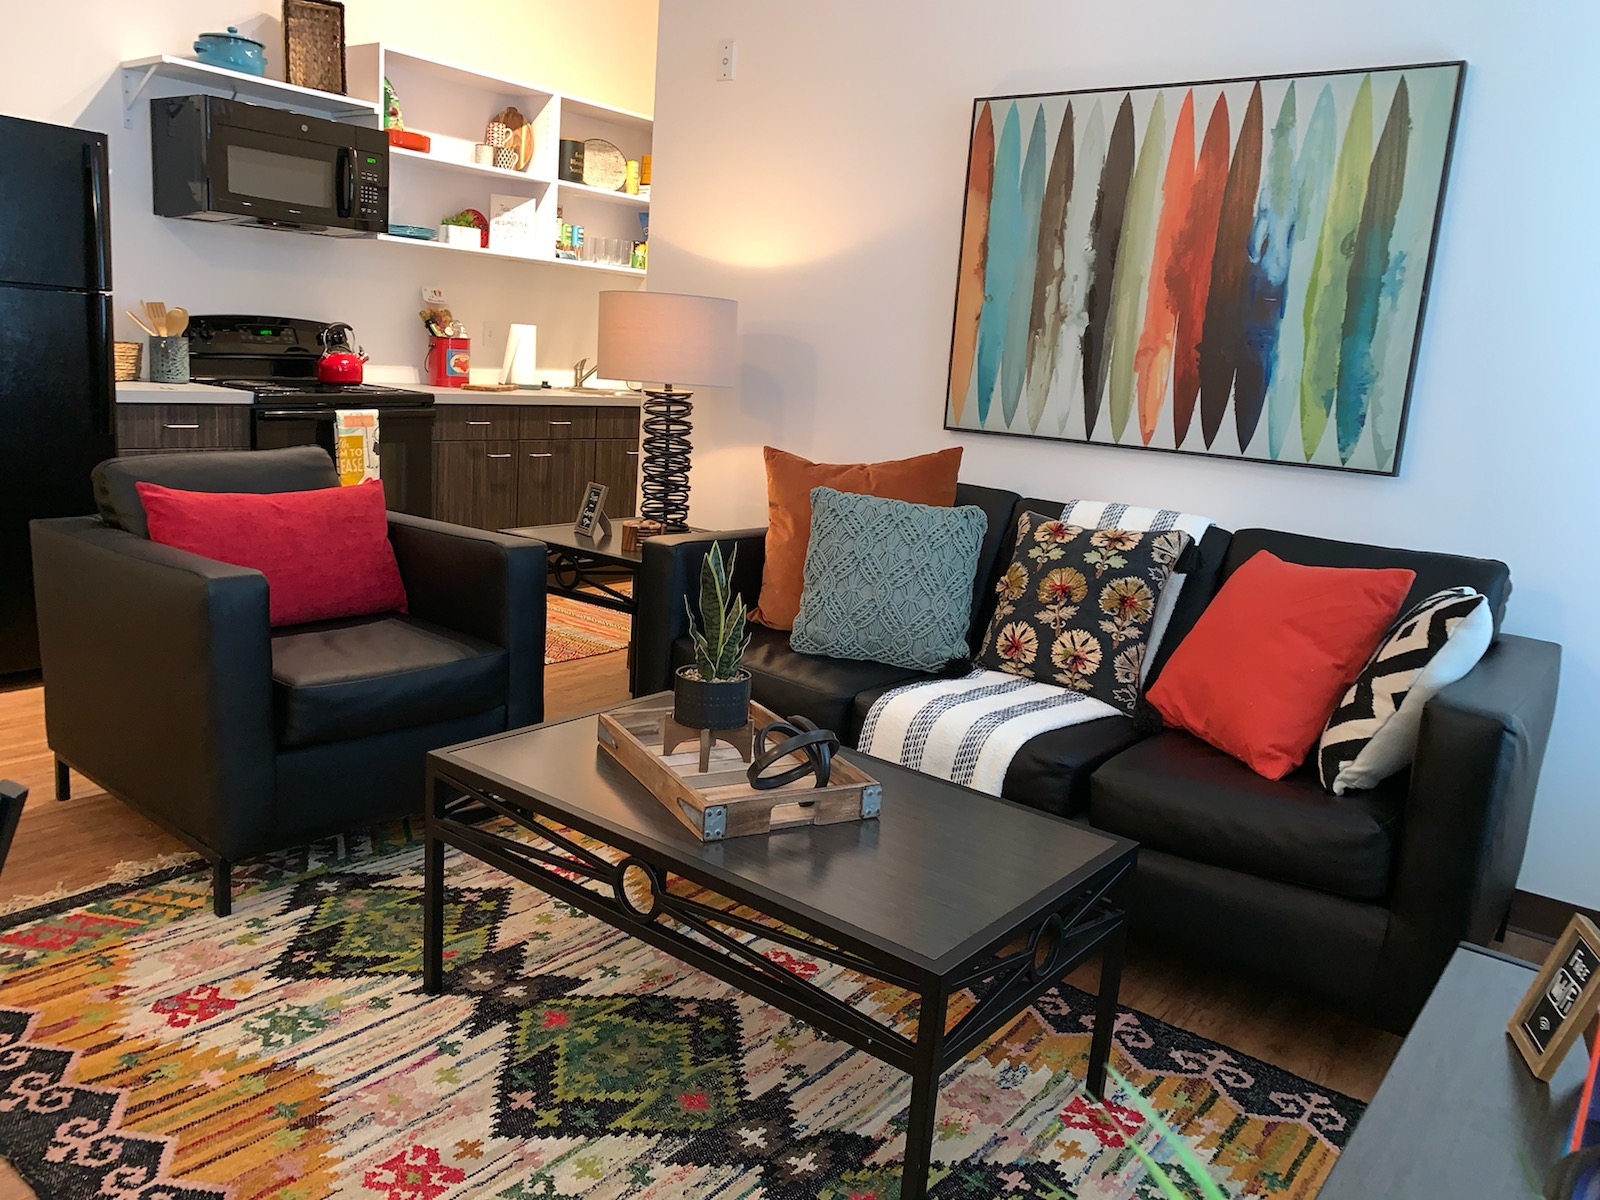 furnished apartment chattanooga